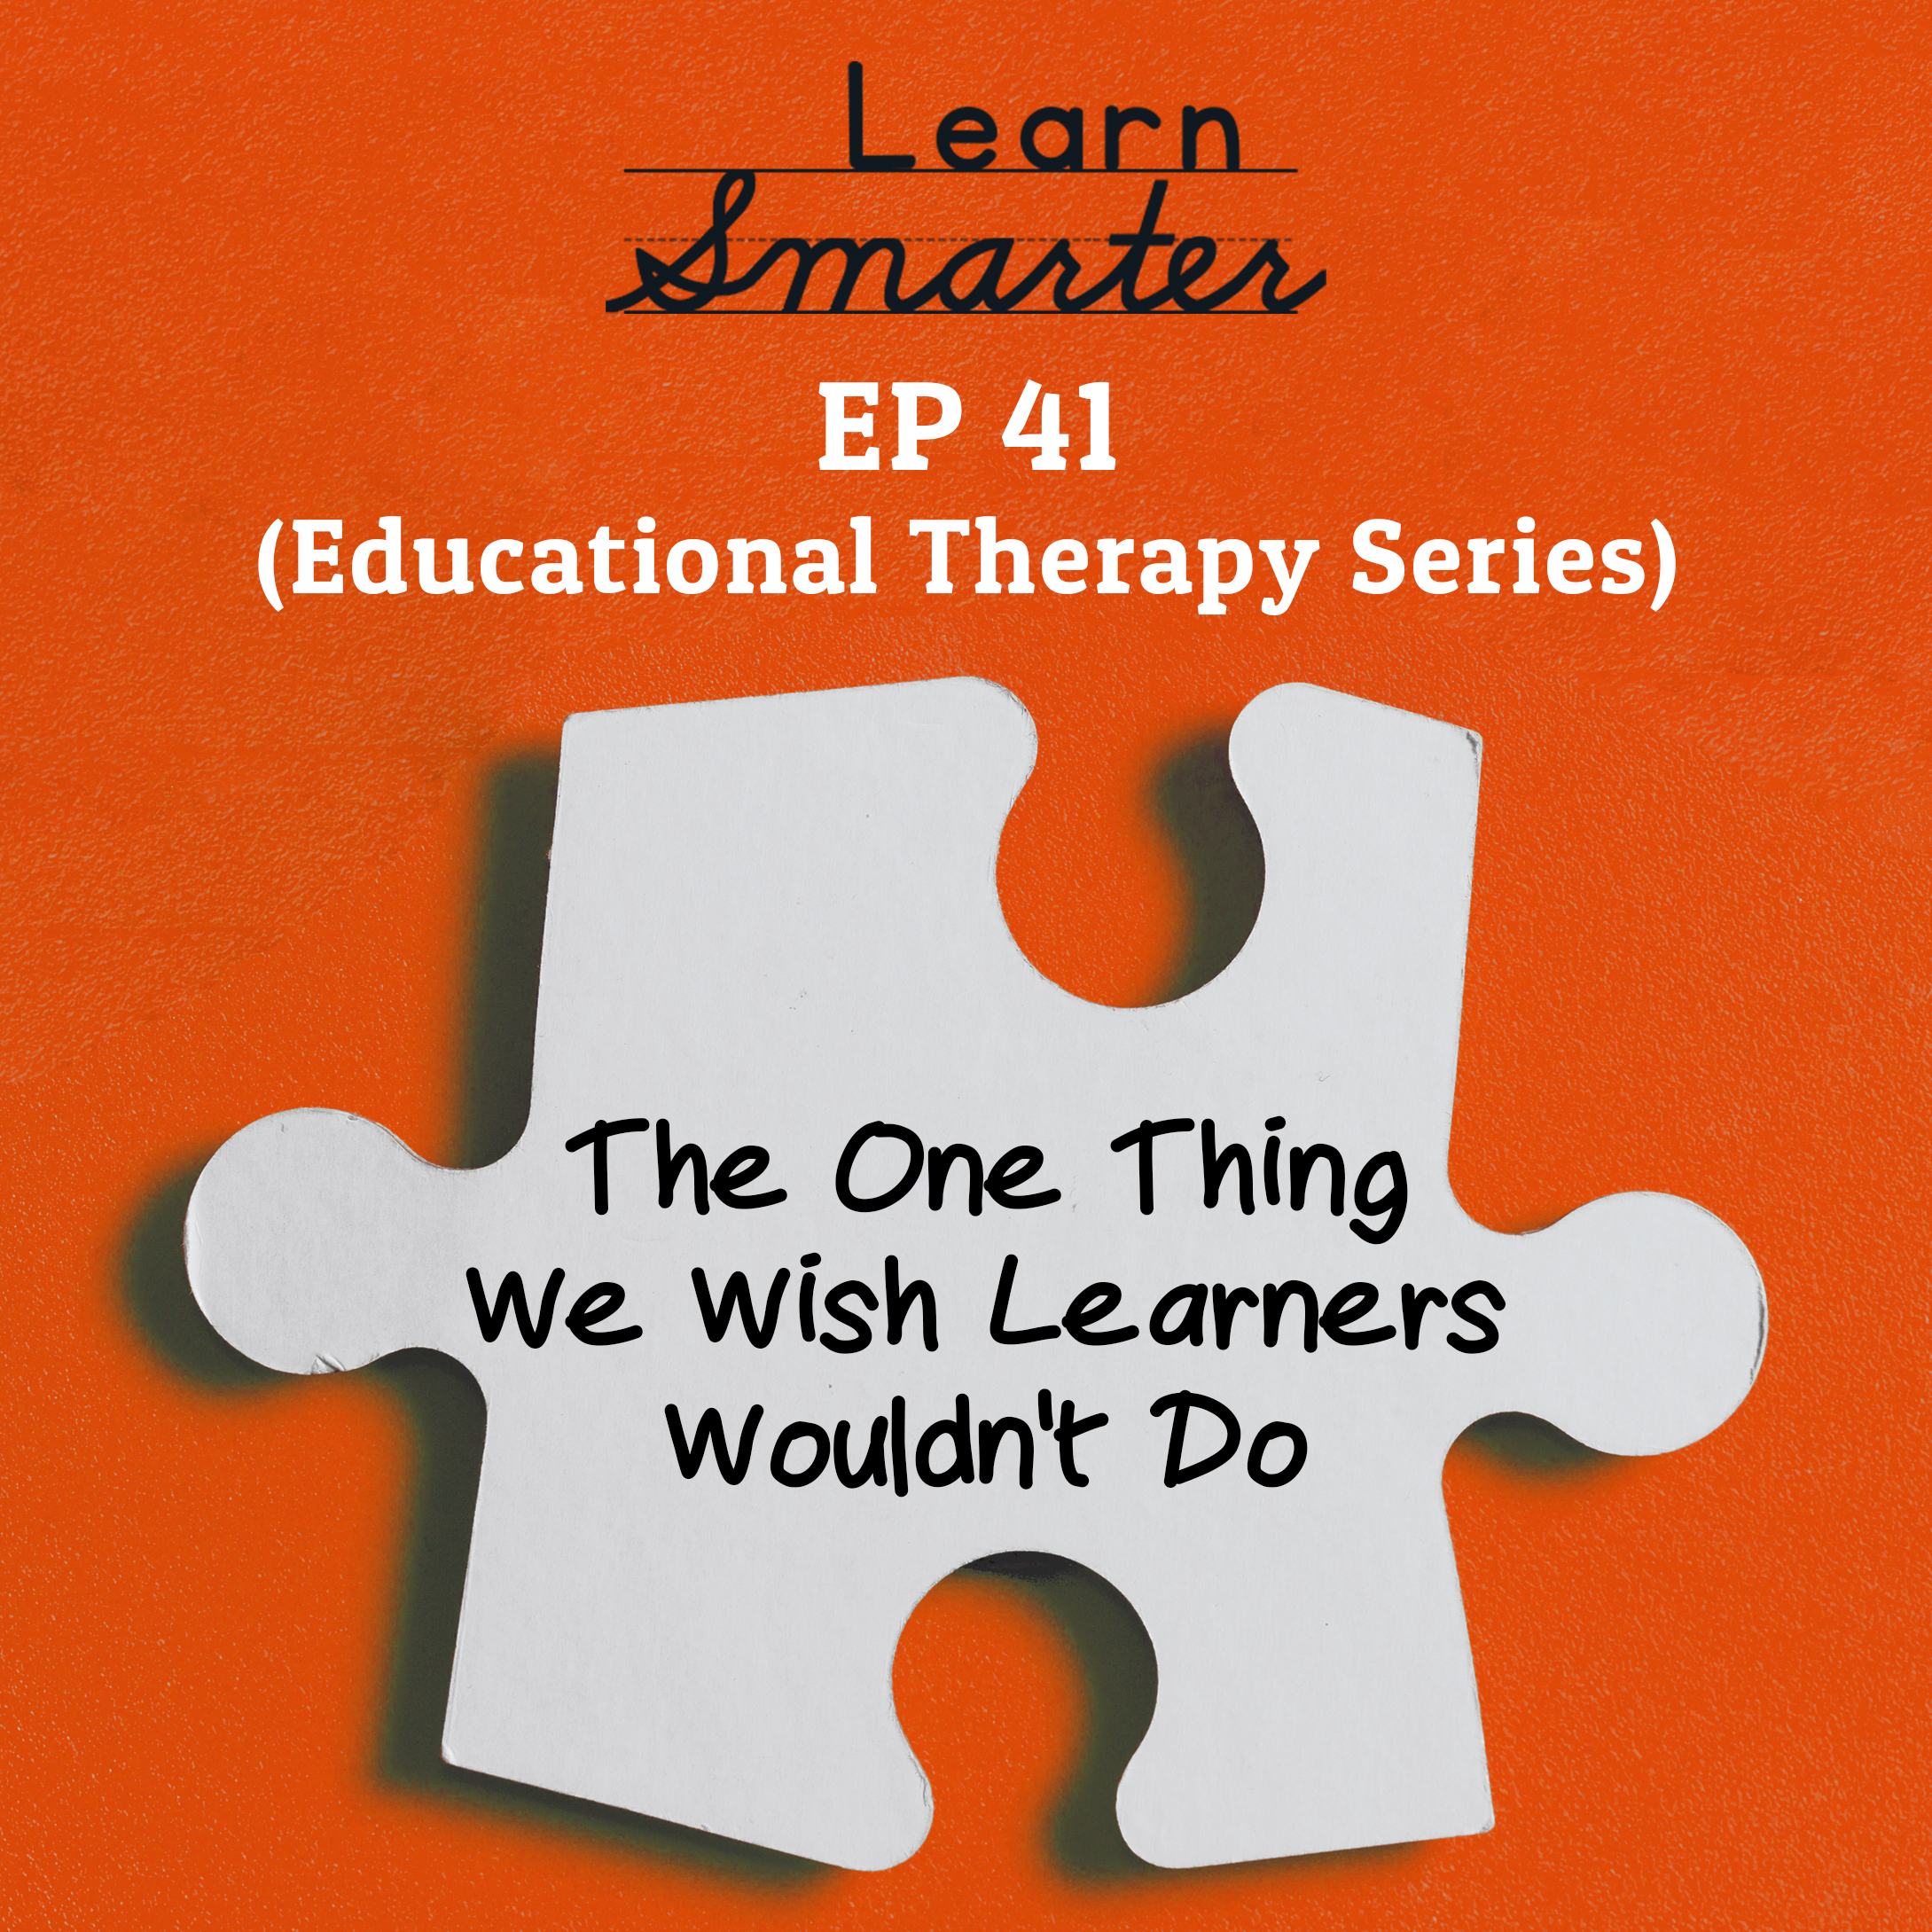 41: The One Thing We Wish Learners Wouldn't Do